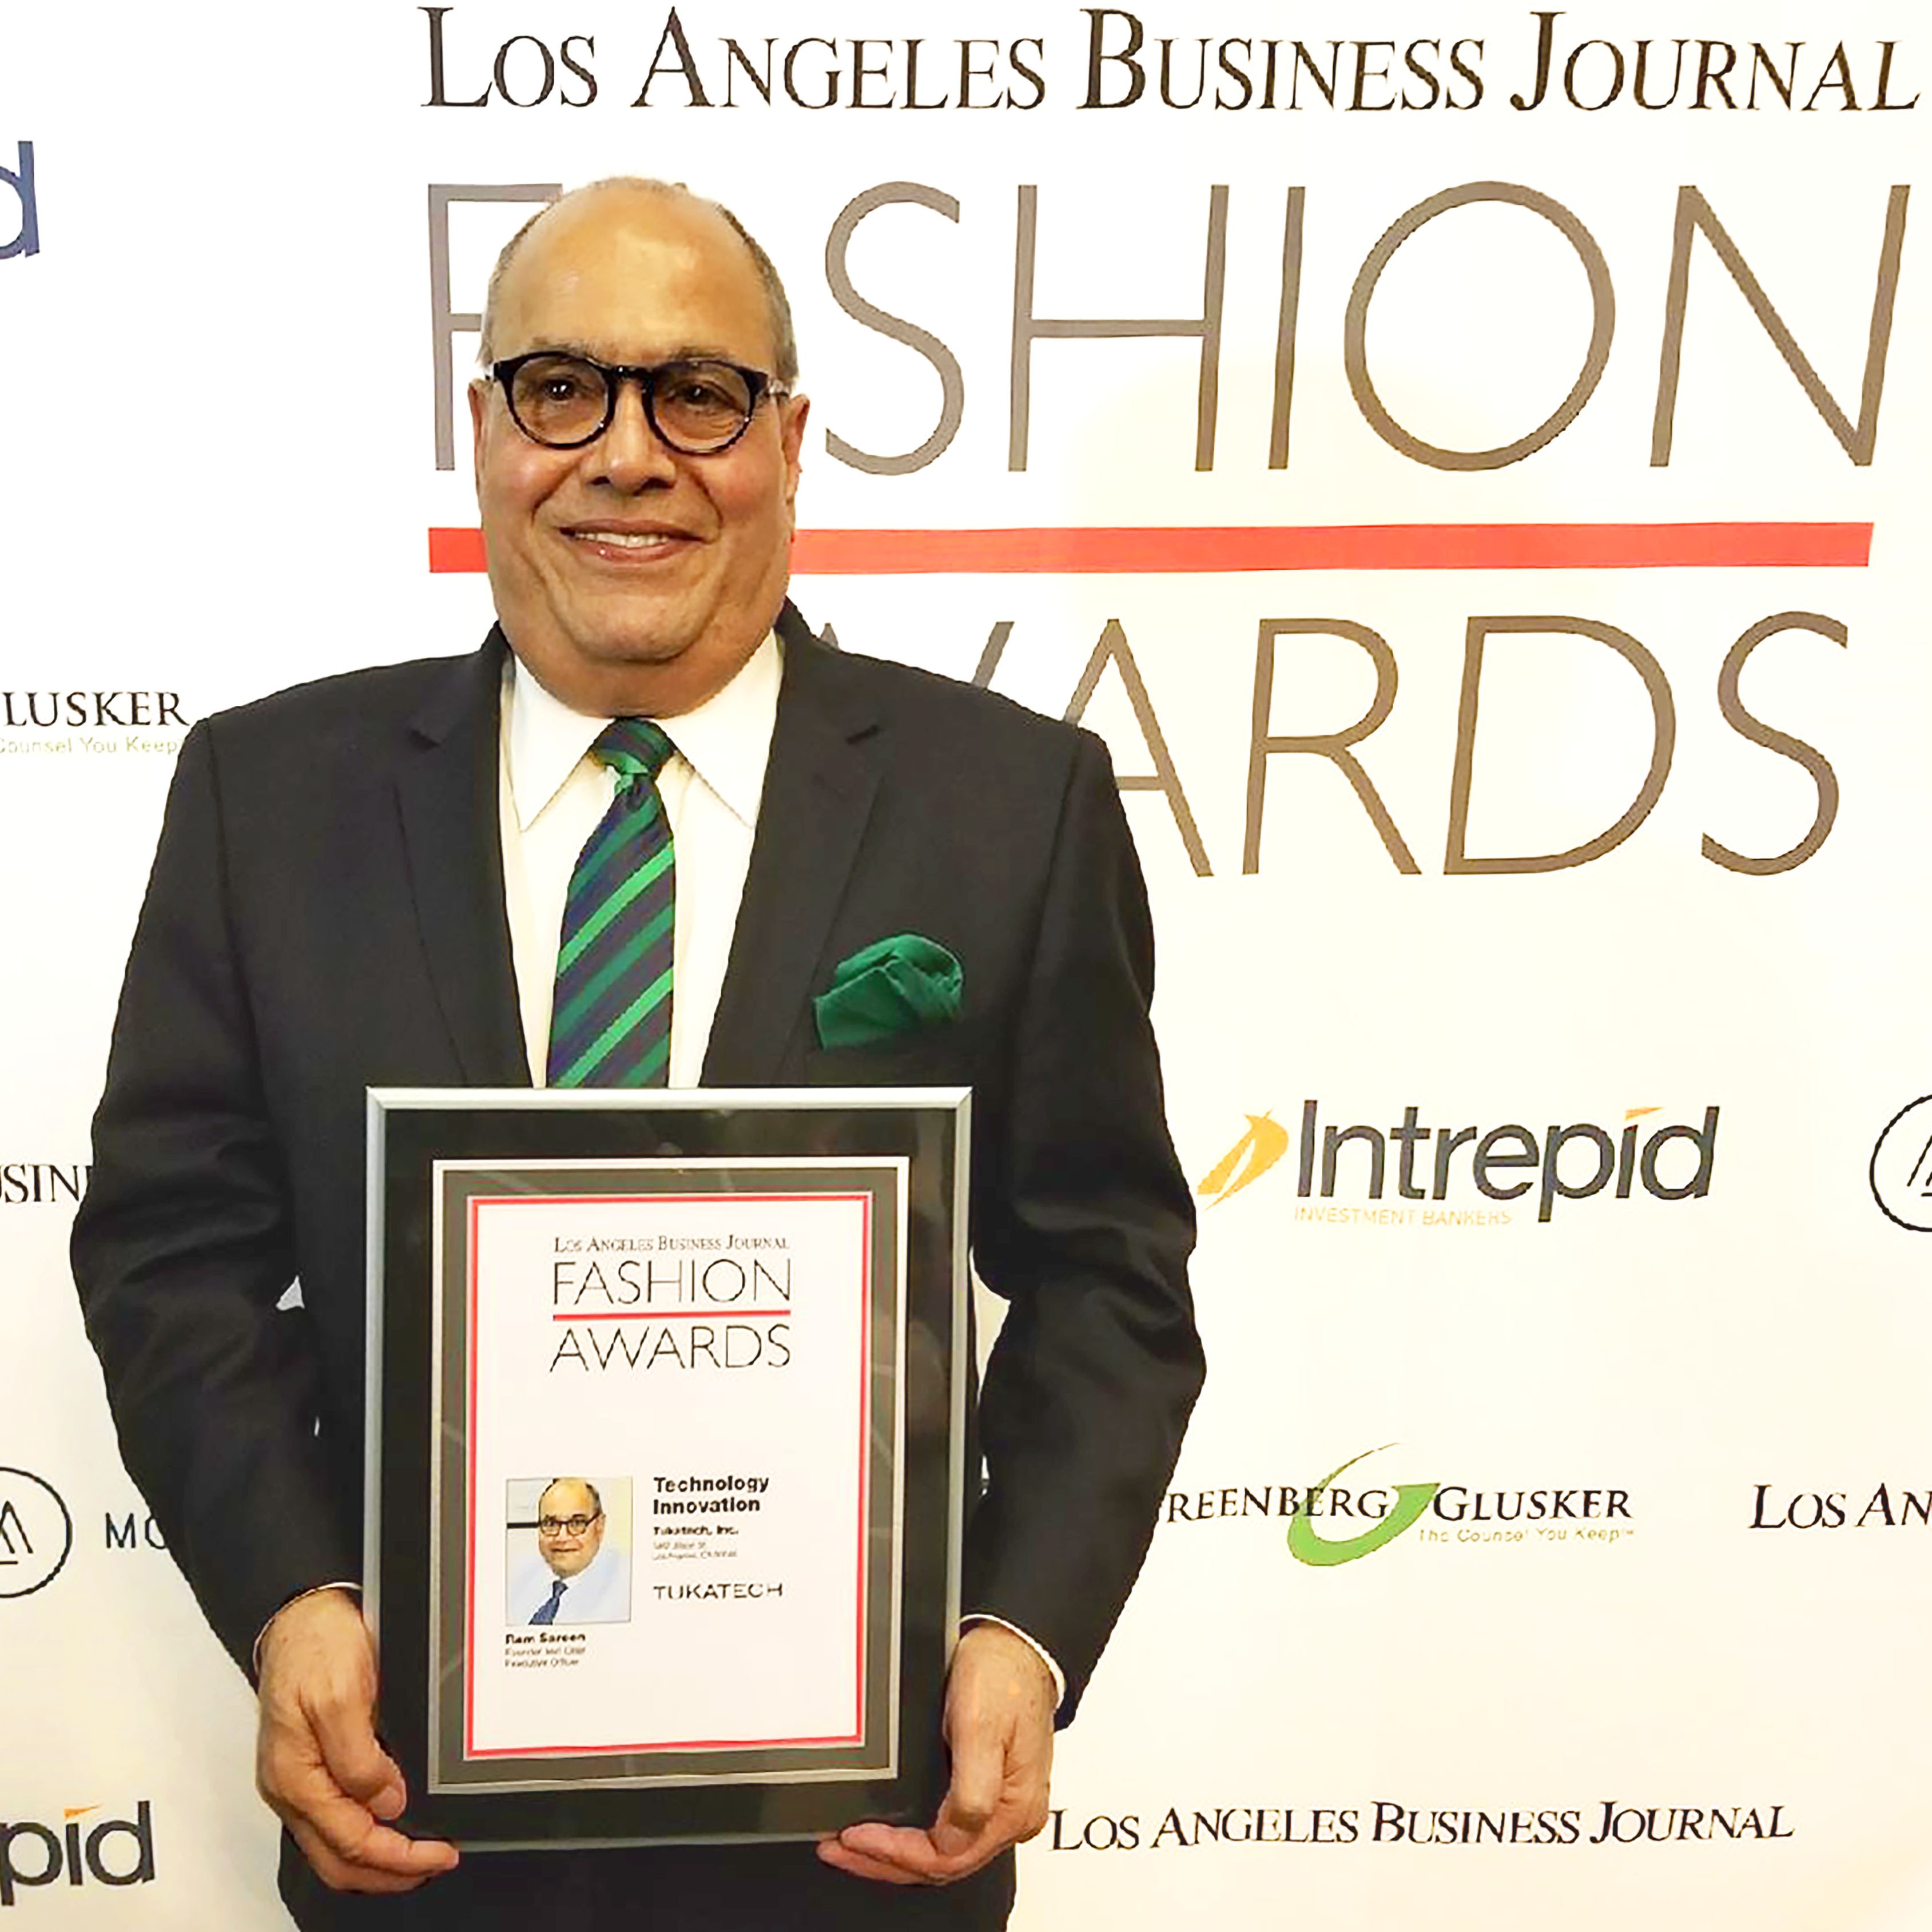 Los Angeles Business Journal Honors Tukatech With The 2017